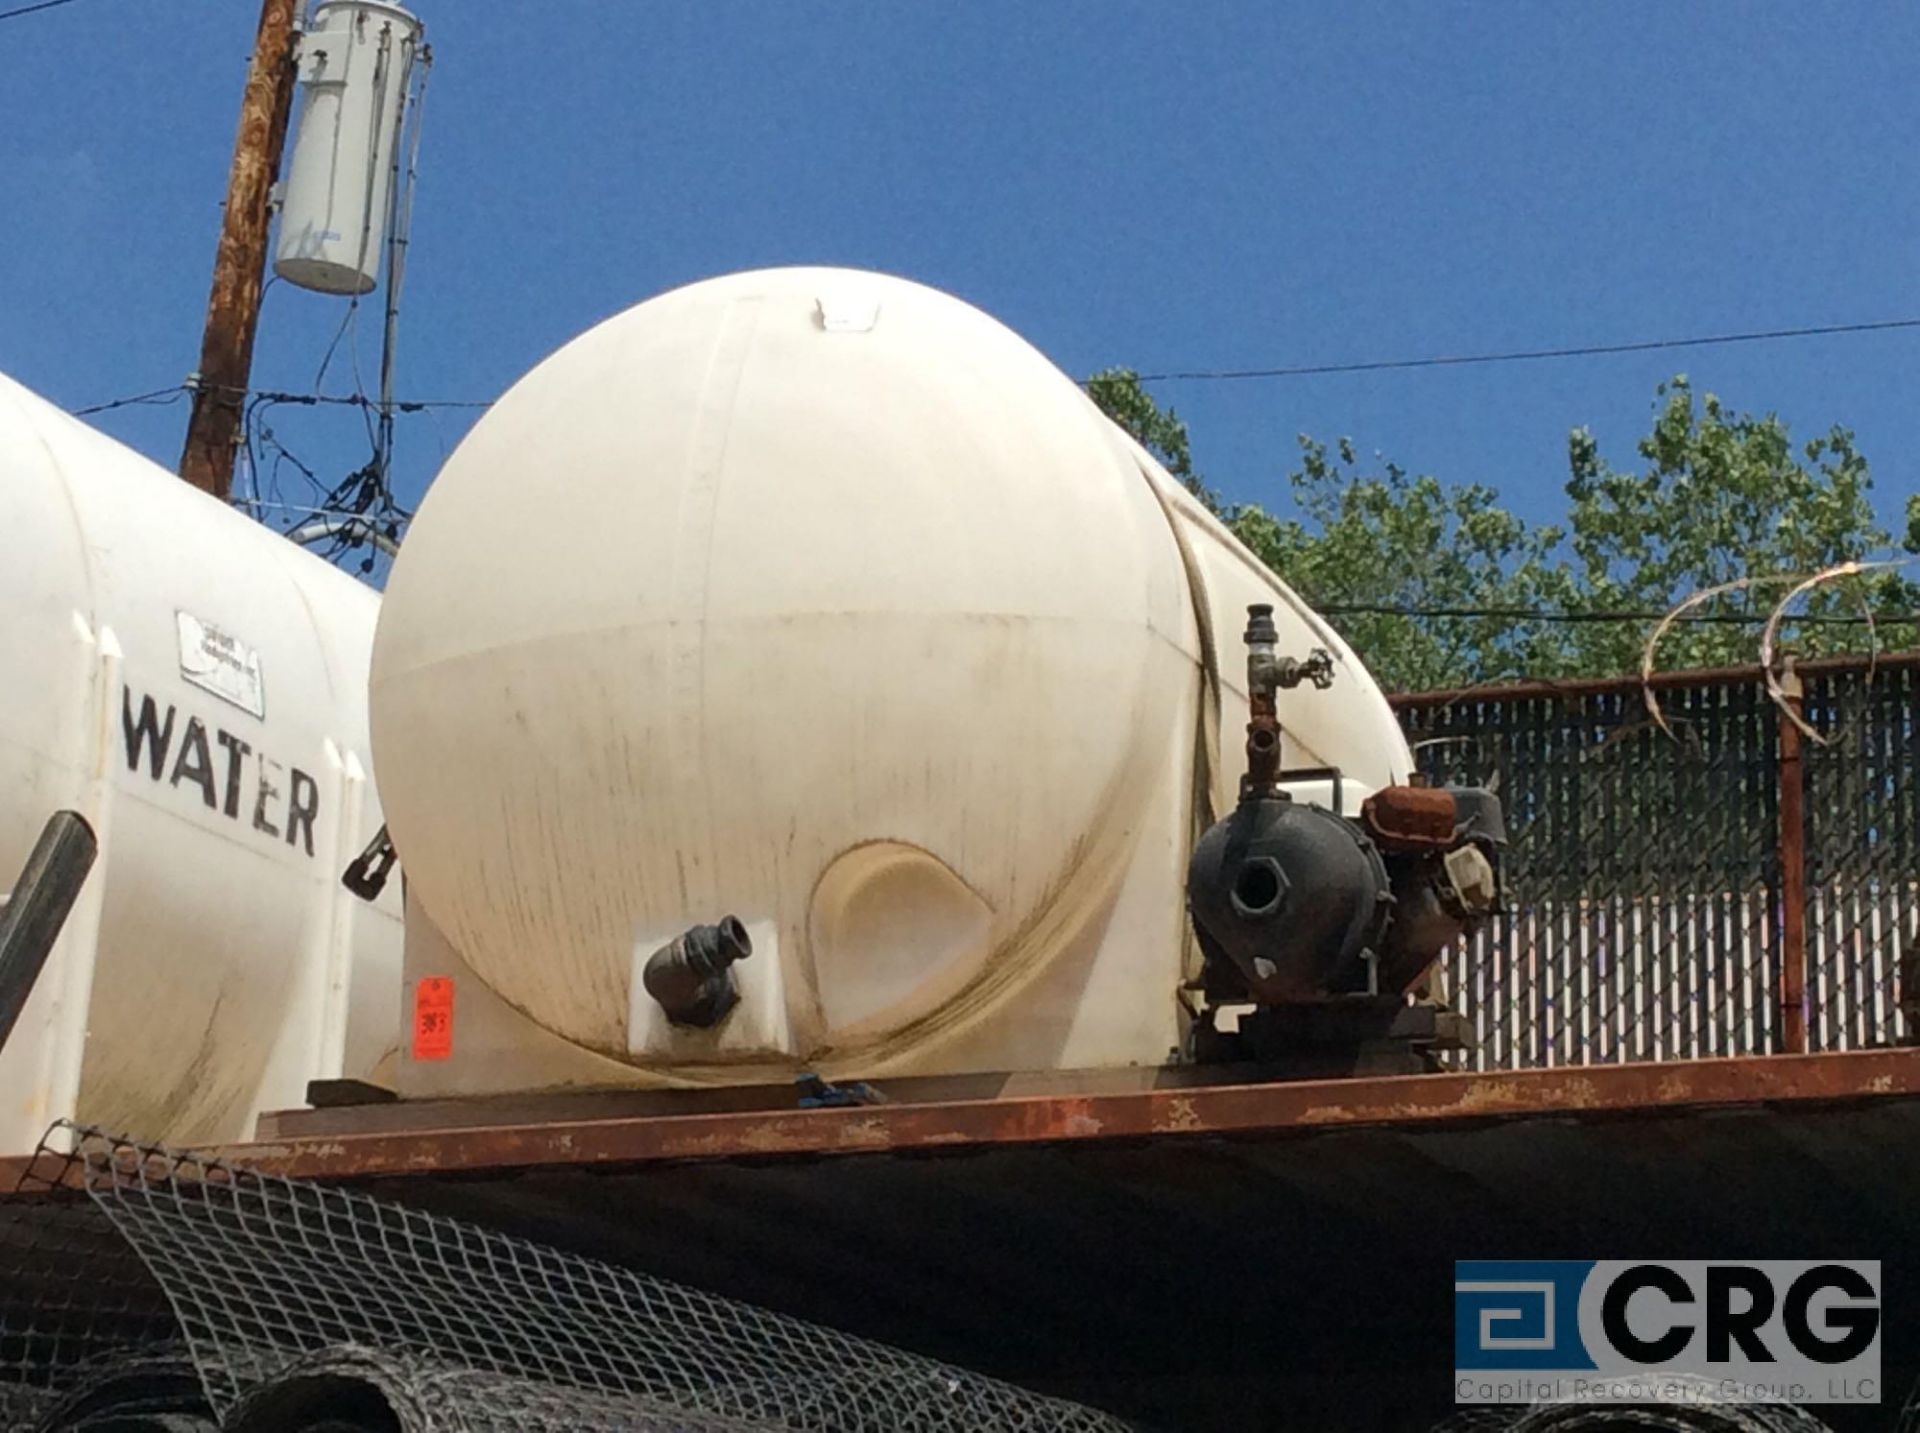 Lot 383 - approx 300 gal water storage tank with attached pump